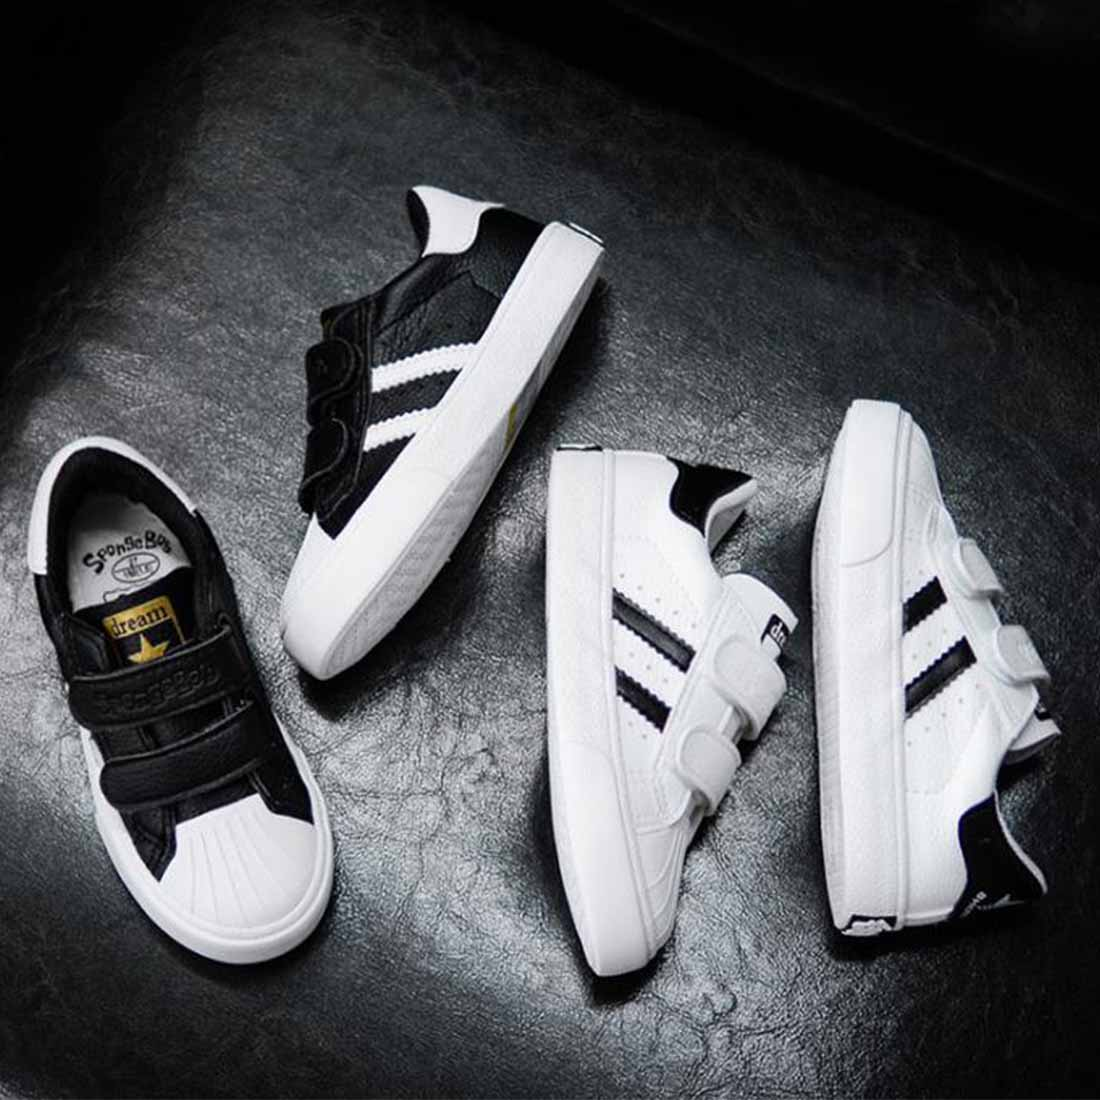 Kids Leather Shoes Girls Casual Shoes Summer Black White Boys Leisure Shoes Comfortable Simple Fashionable Design